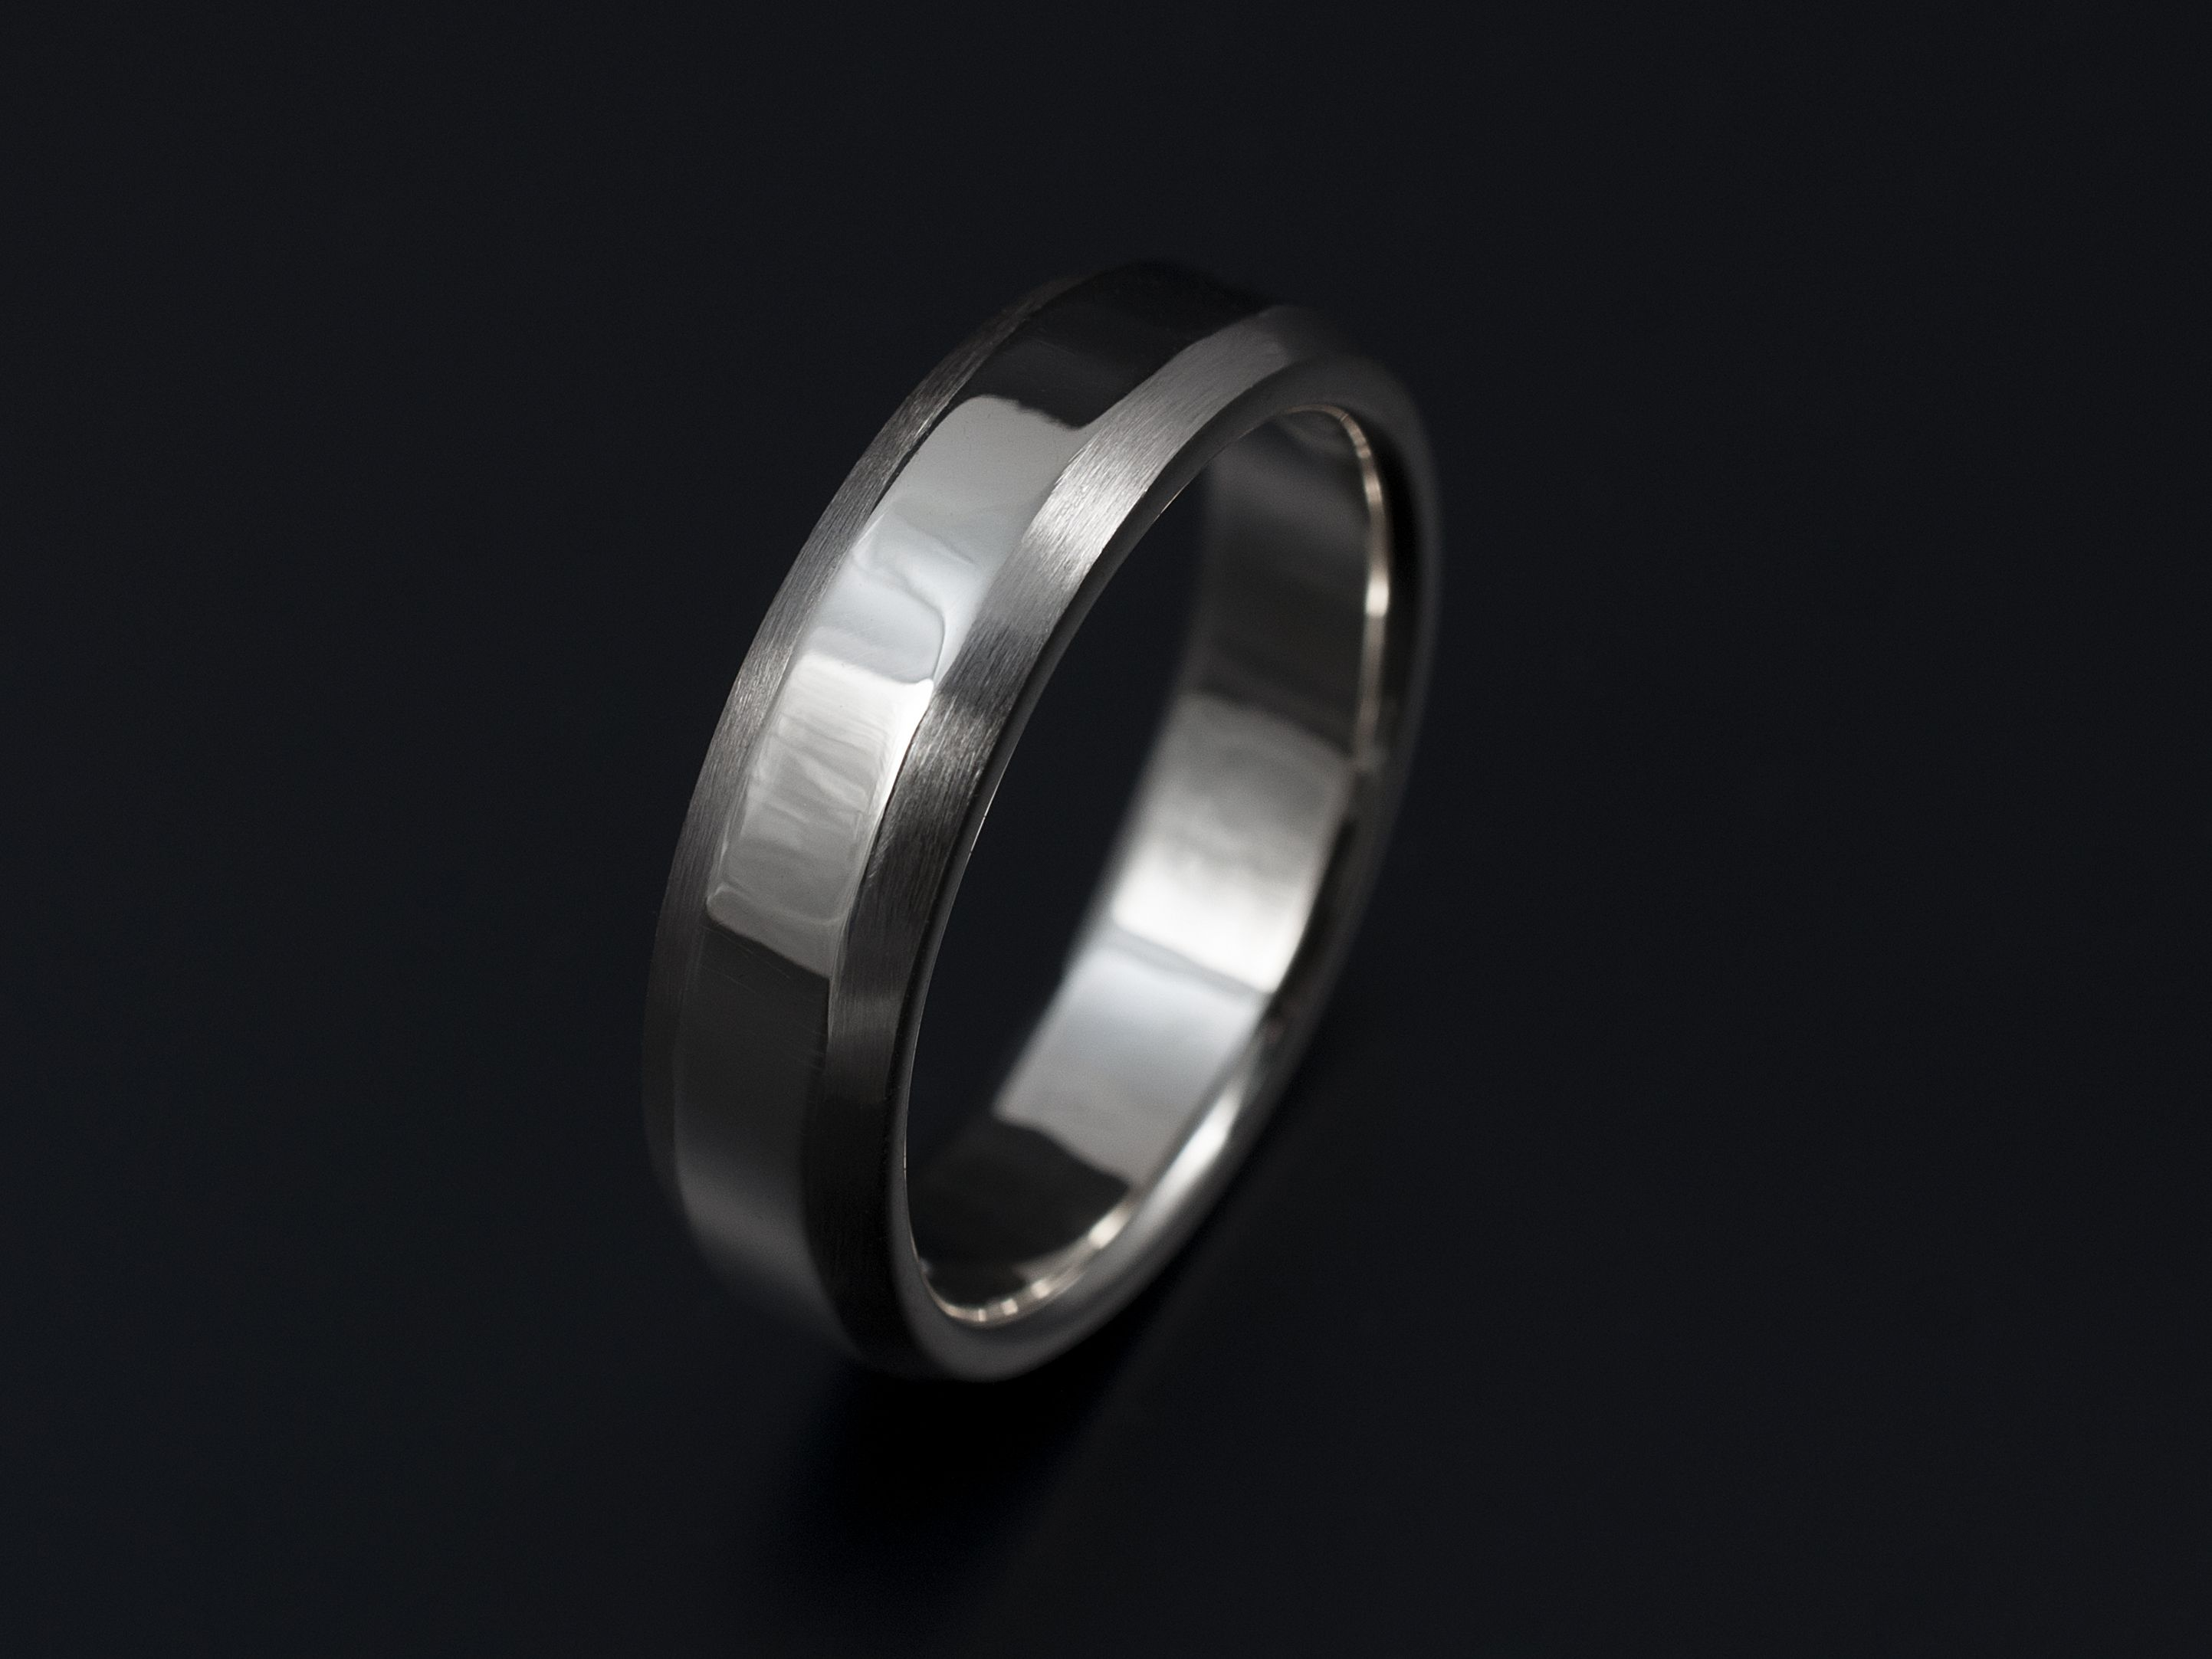 Gents palladium wedding ring mm with chamfered edges polished and